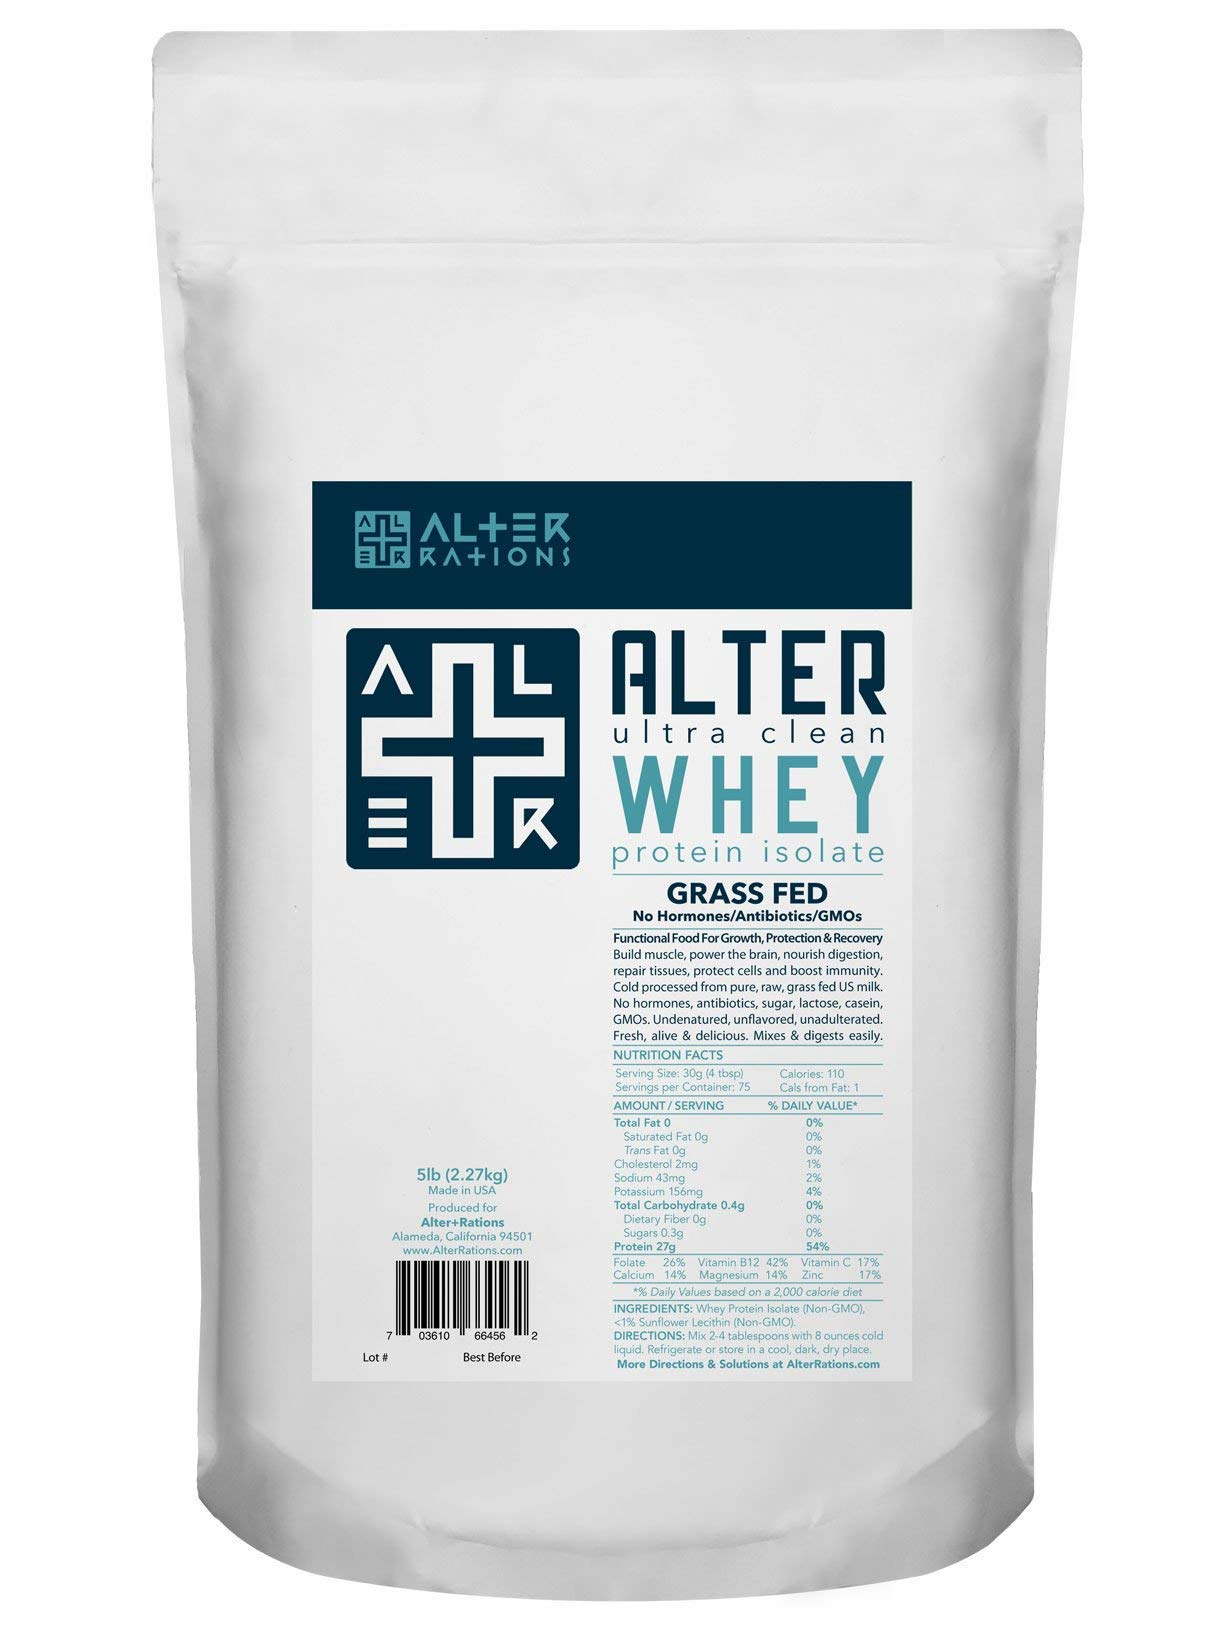 Alter+WHEY | Ultra-Clean Grass-Fed Whey Protein Isolate | Professional-Grade. Cold-Processed. No Sugar. No Additives. Unflavored. (5 lbs)